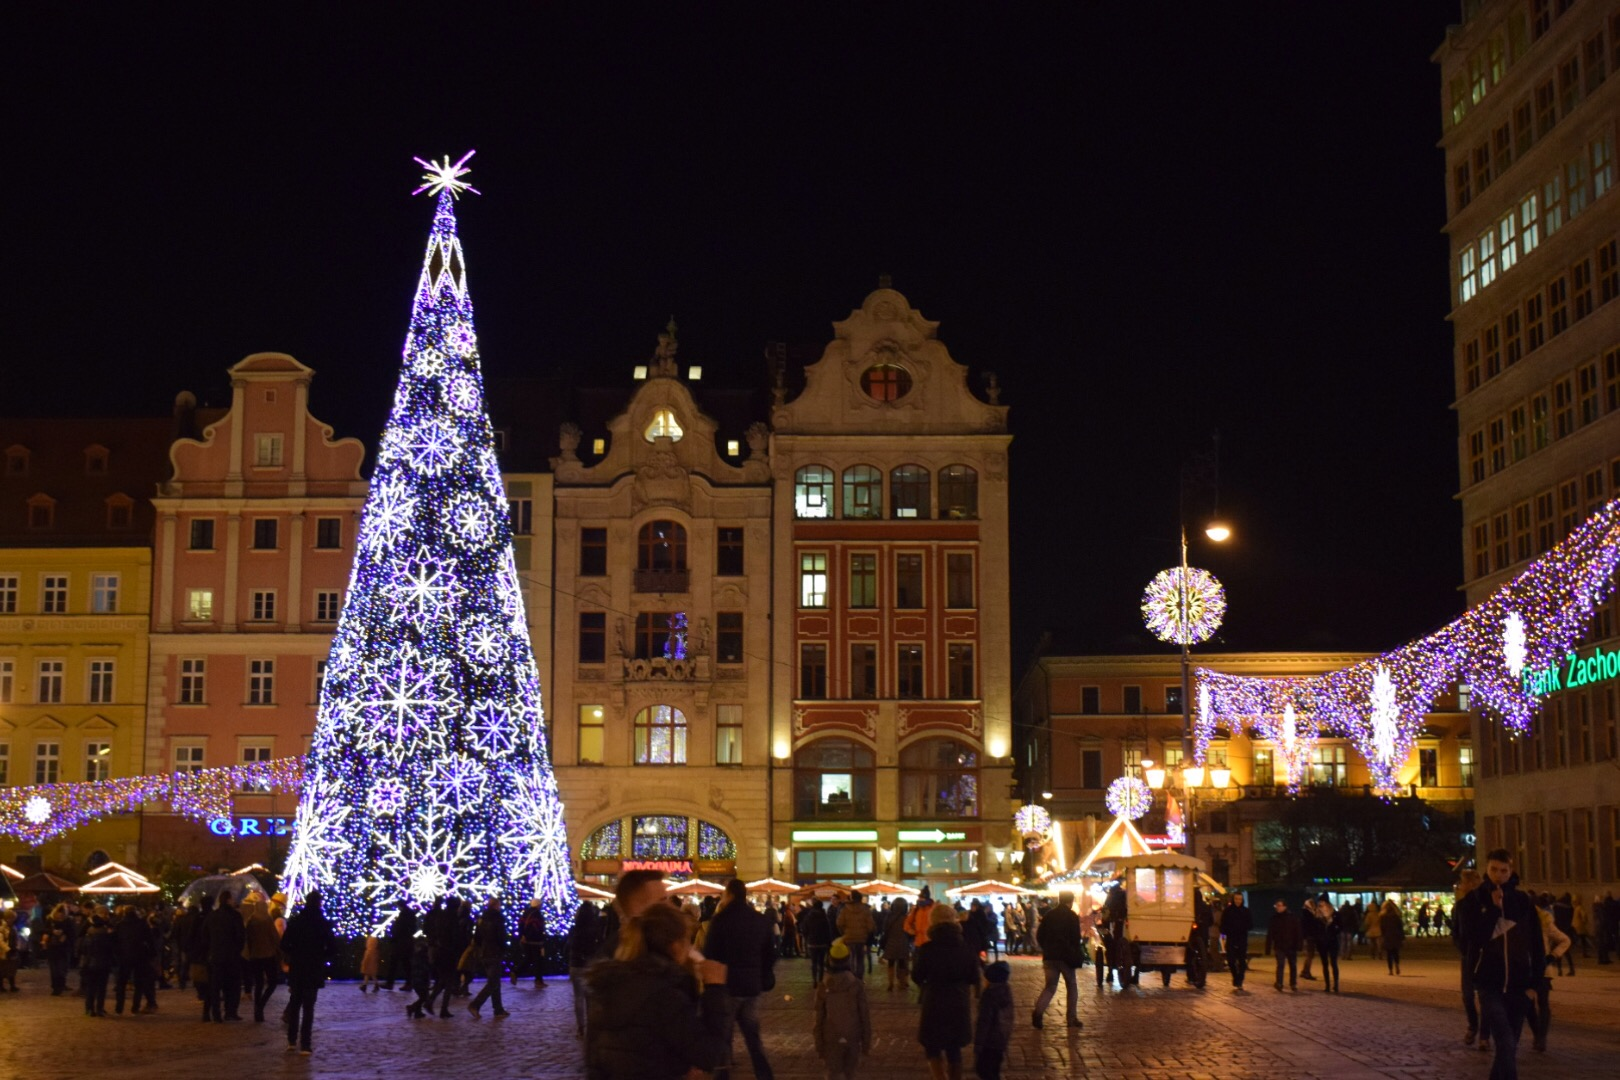 The Christmas tree in Market Square.